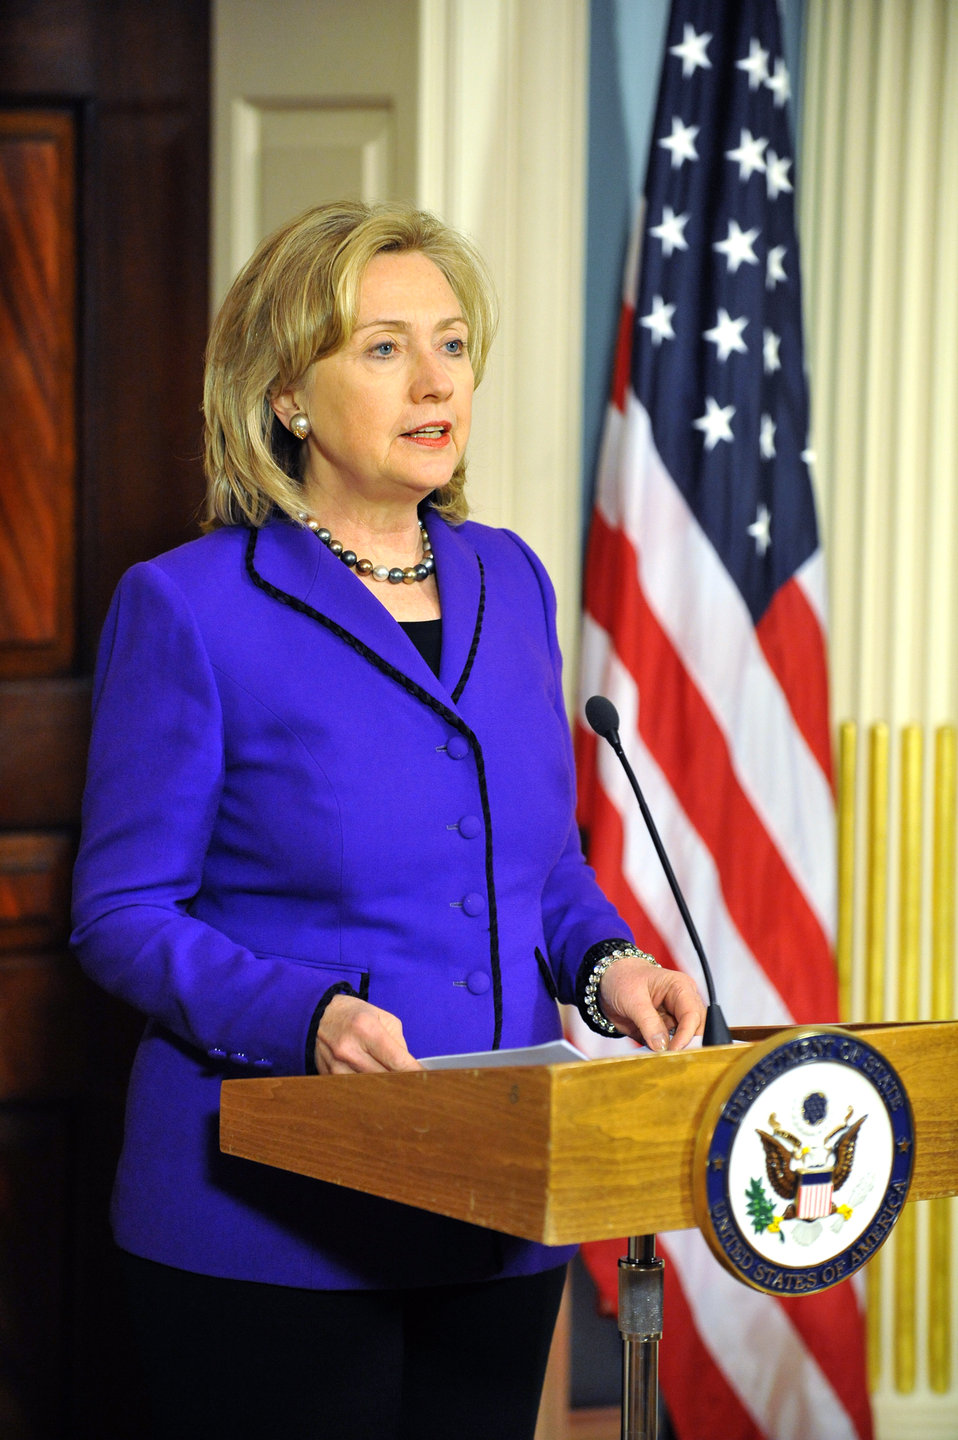 Secretary Clinton Makes a Press Announcement